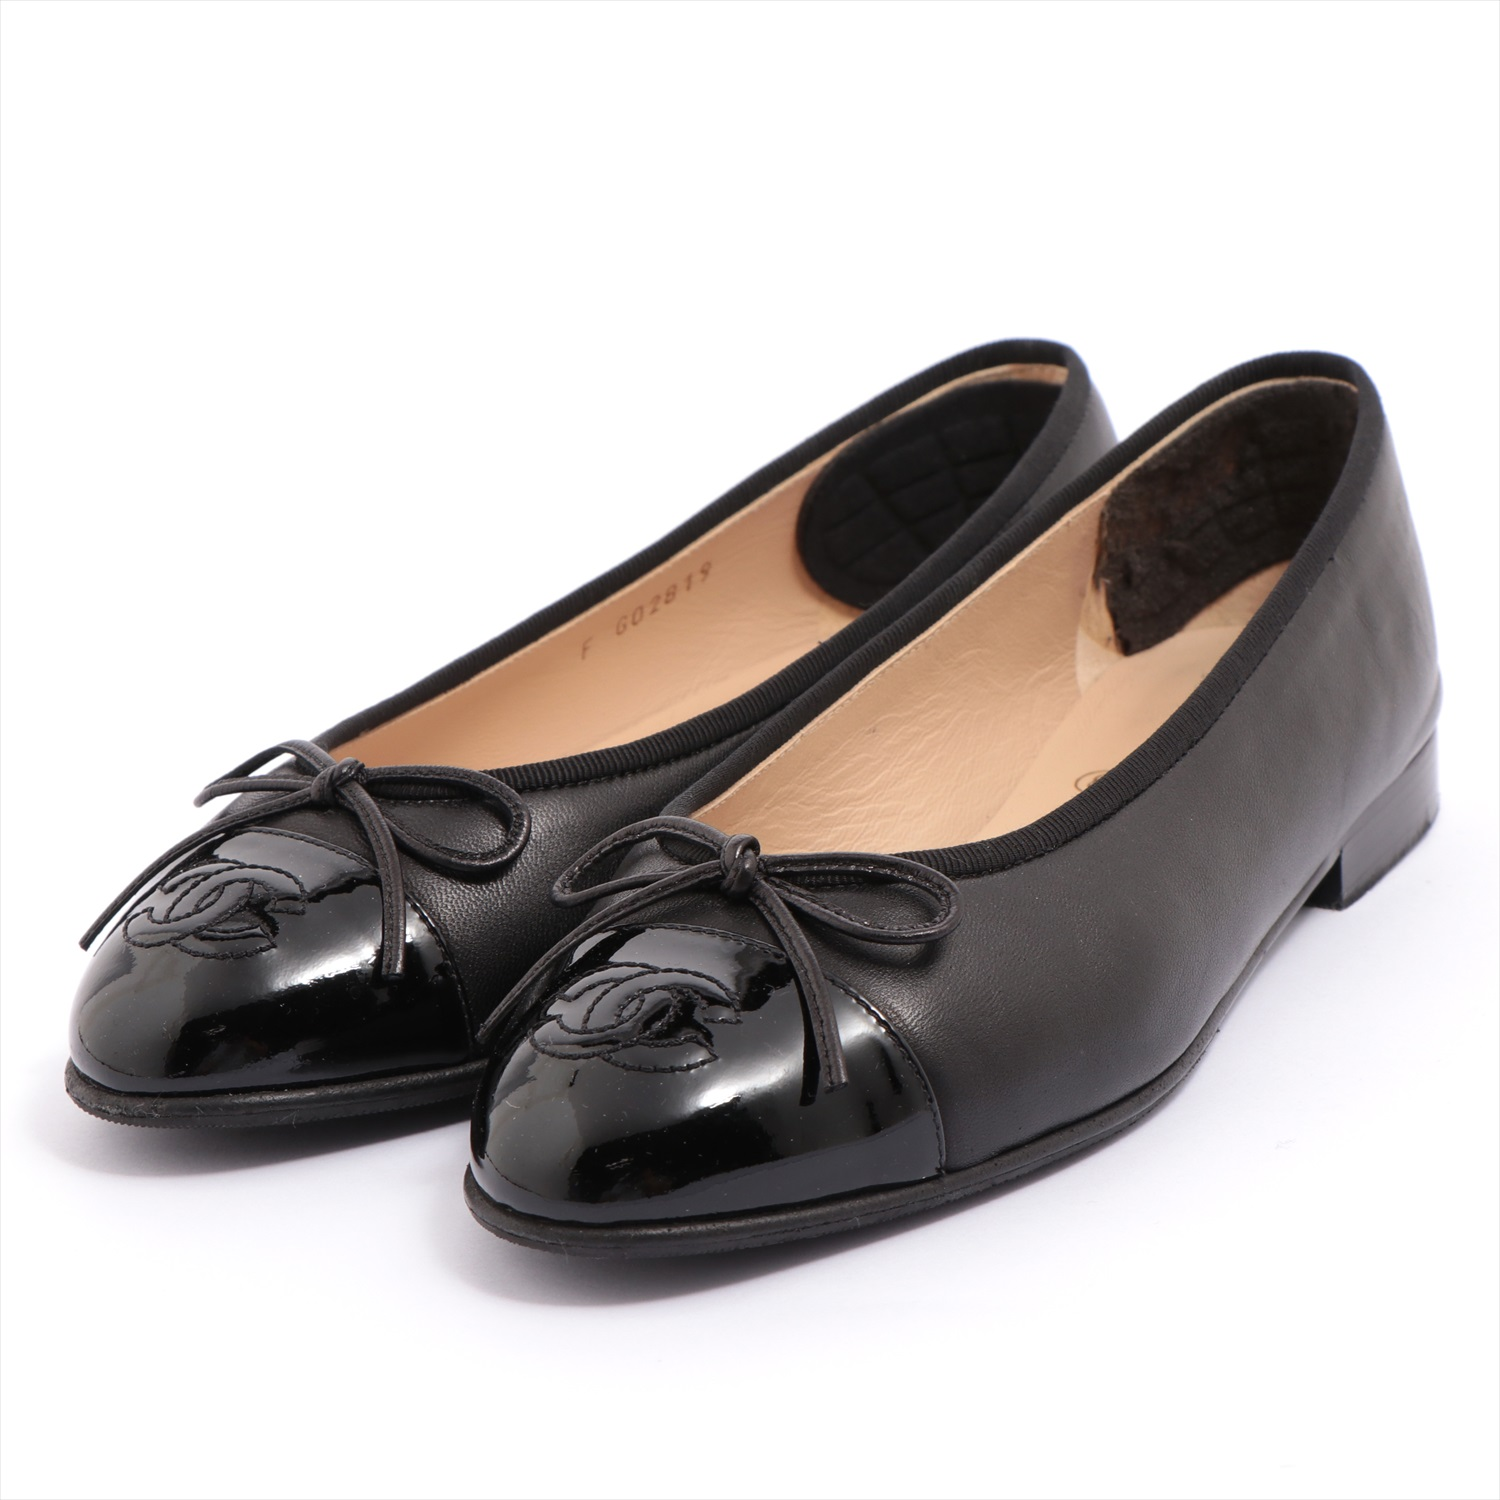 [Used goods] Chanel leather × patent pumps size 35 1/2 Ladies black Kokomaku